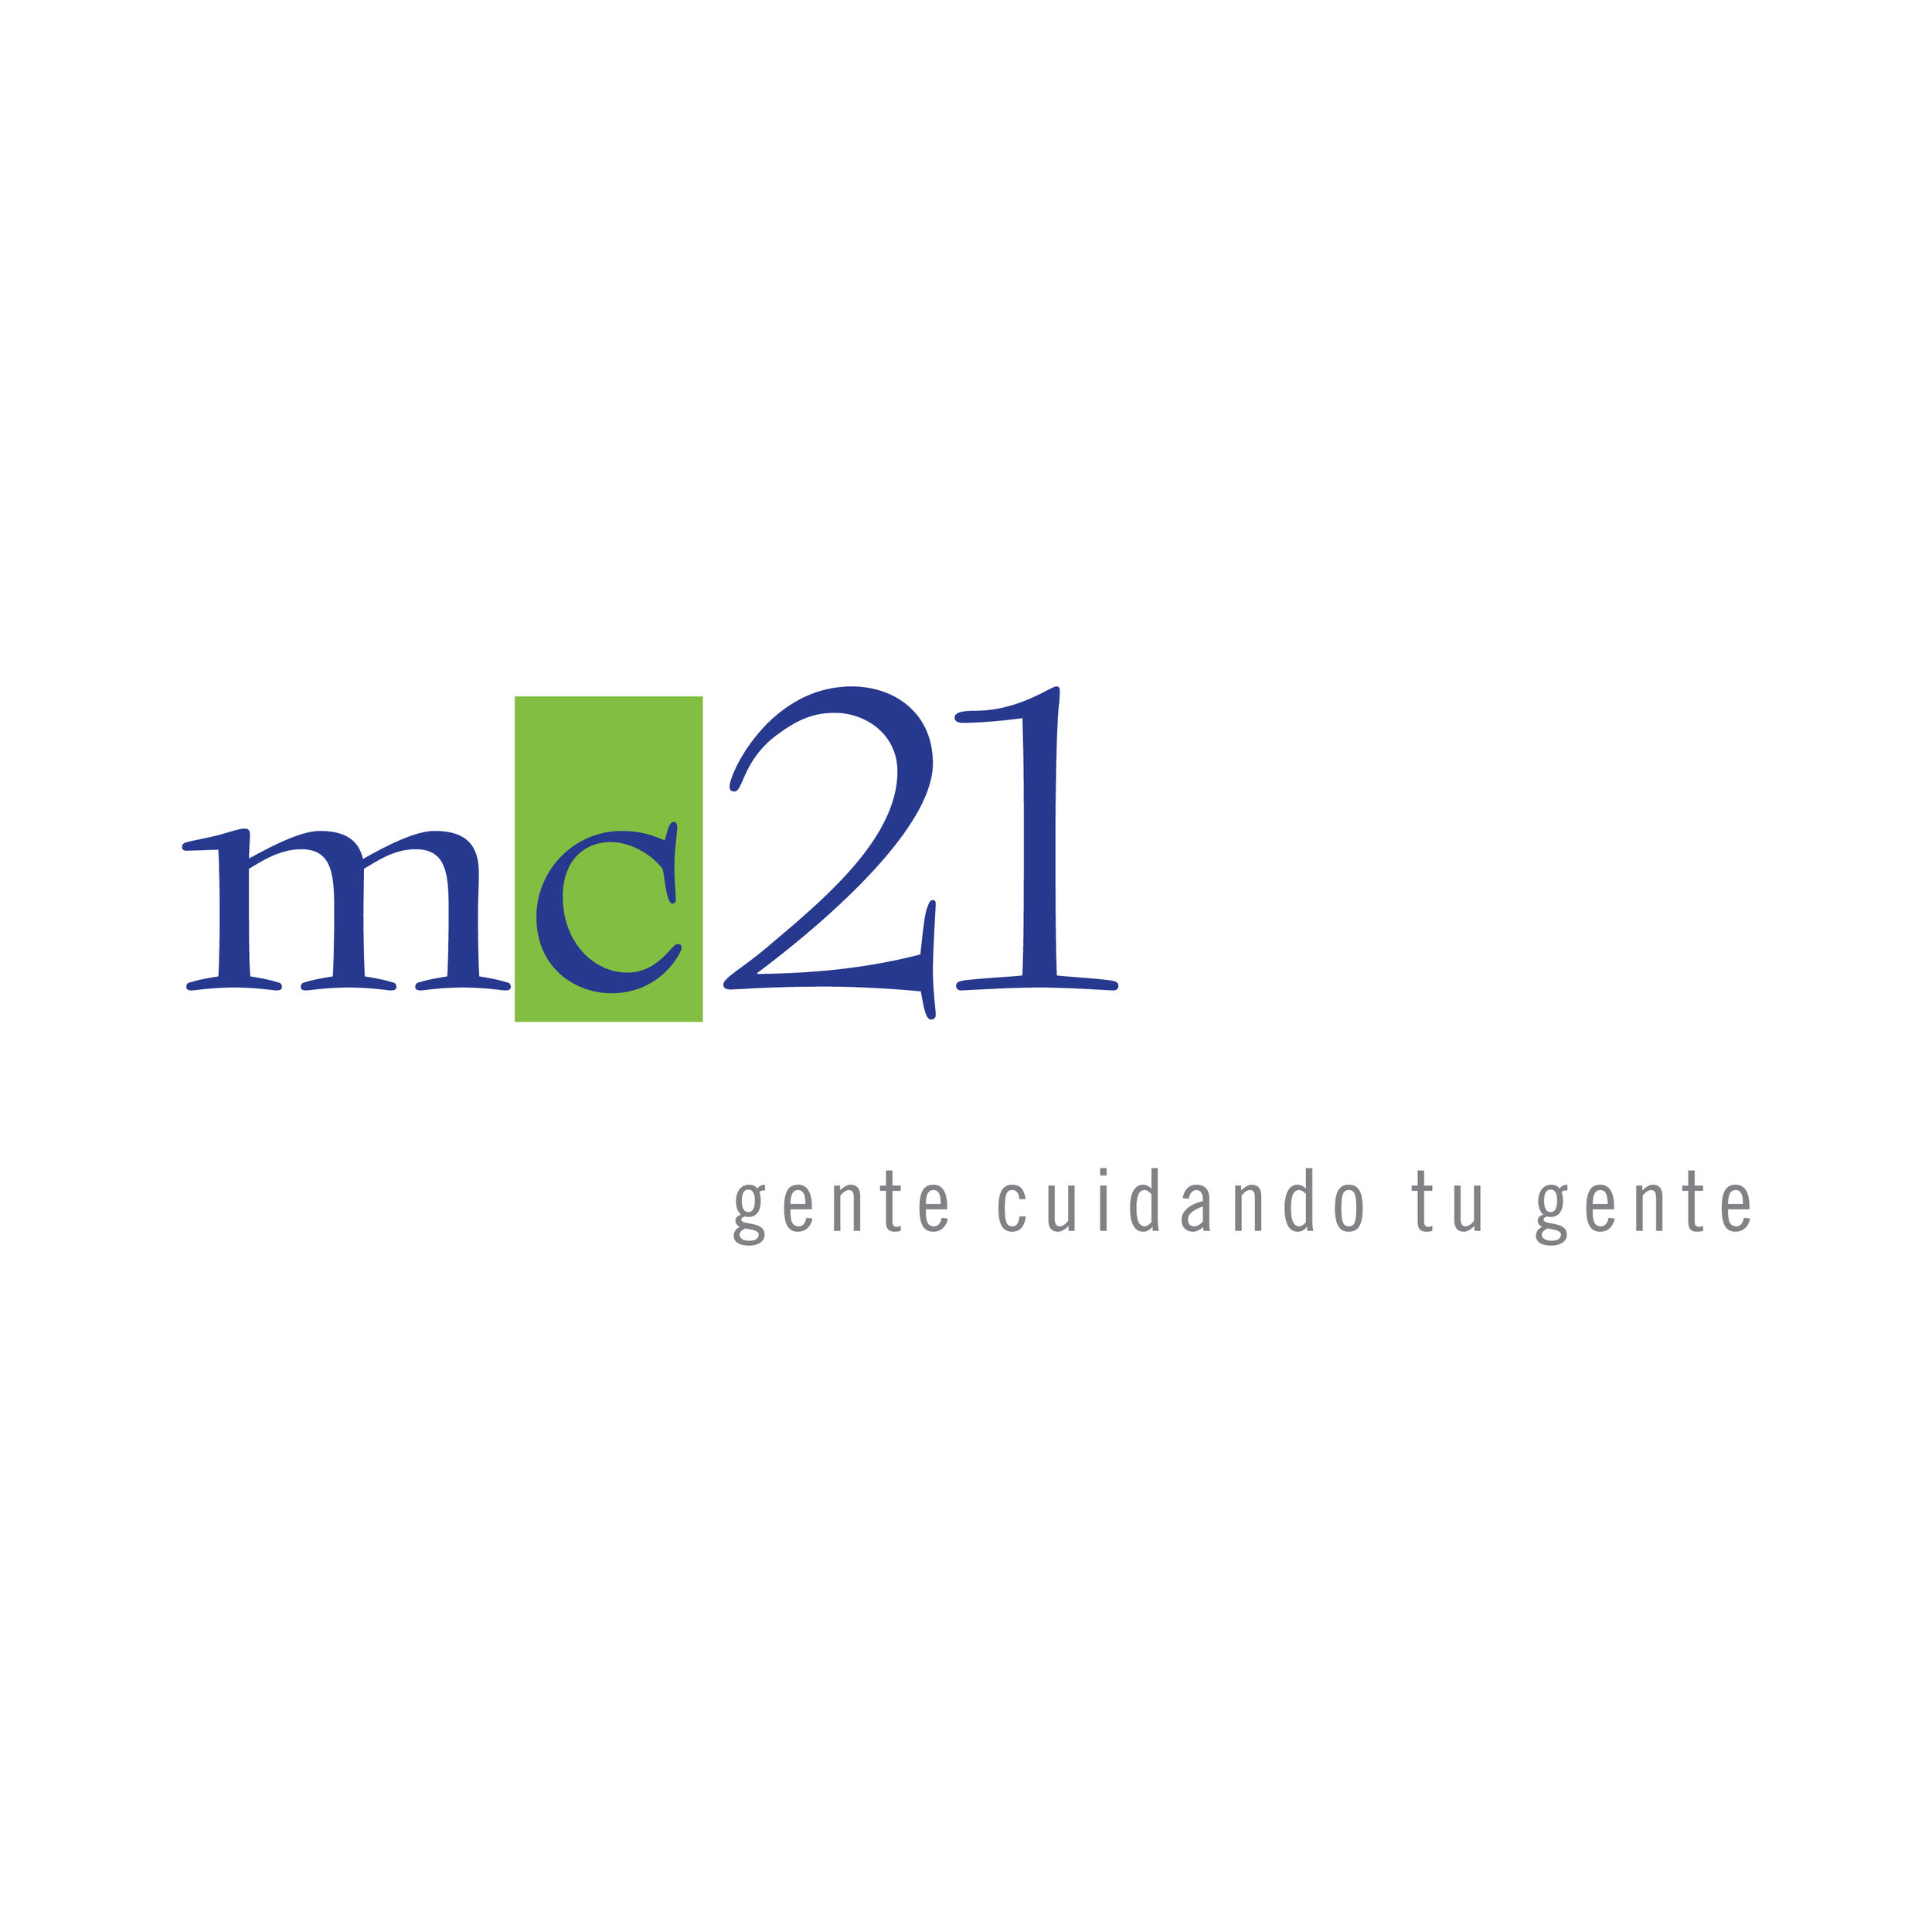 Logo MC21 4x4 hig res color con slogan.jpg